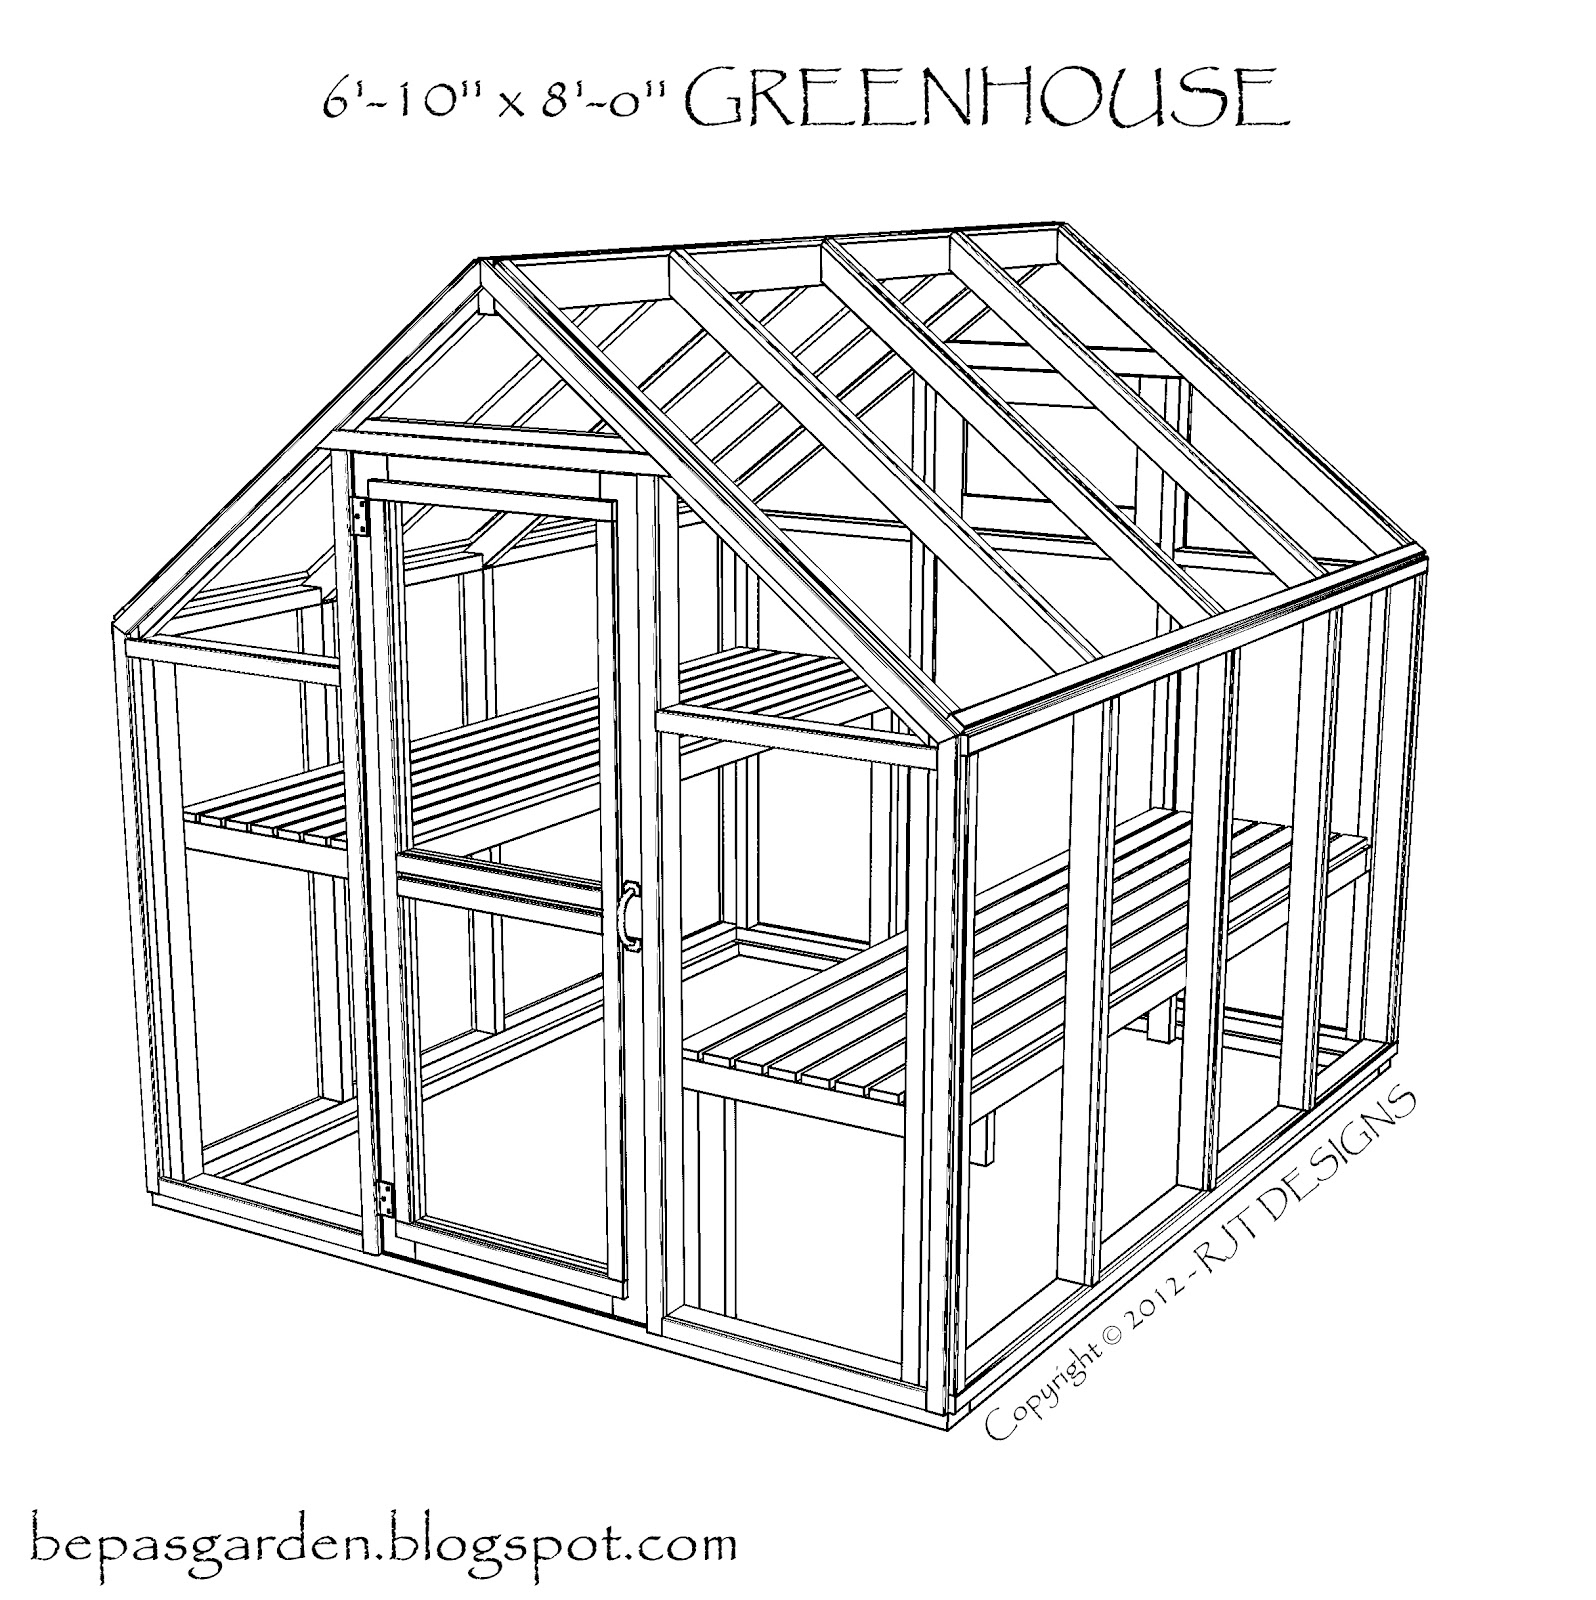 Greenhouse Drawing at GetDrawings com | Free for personal use